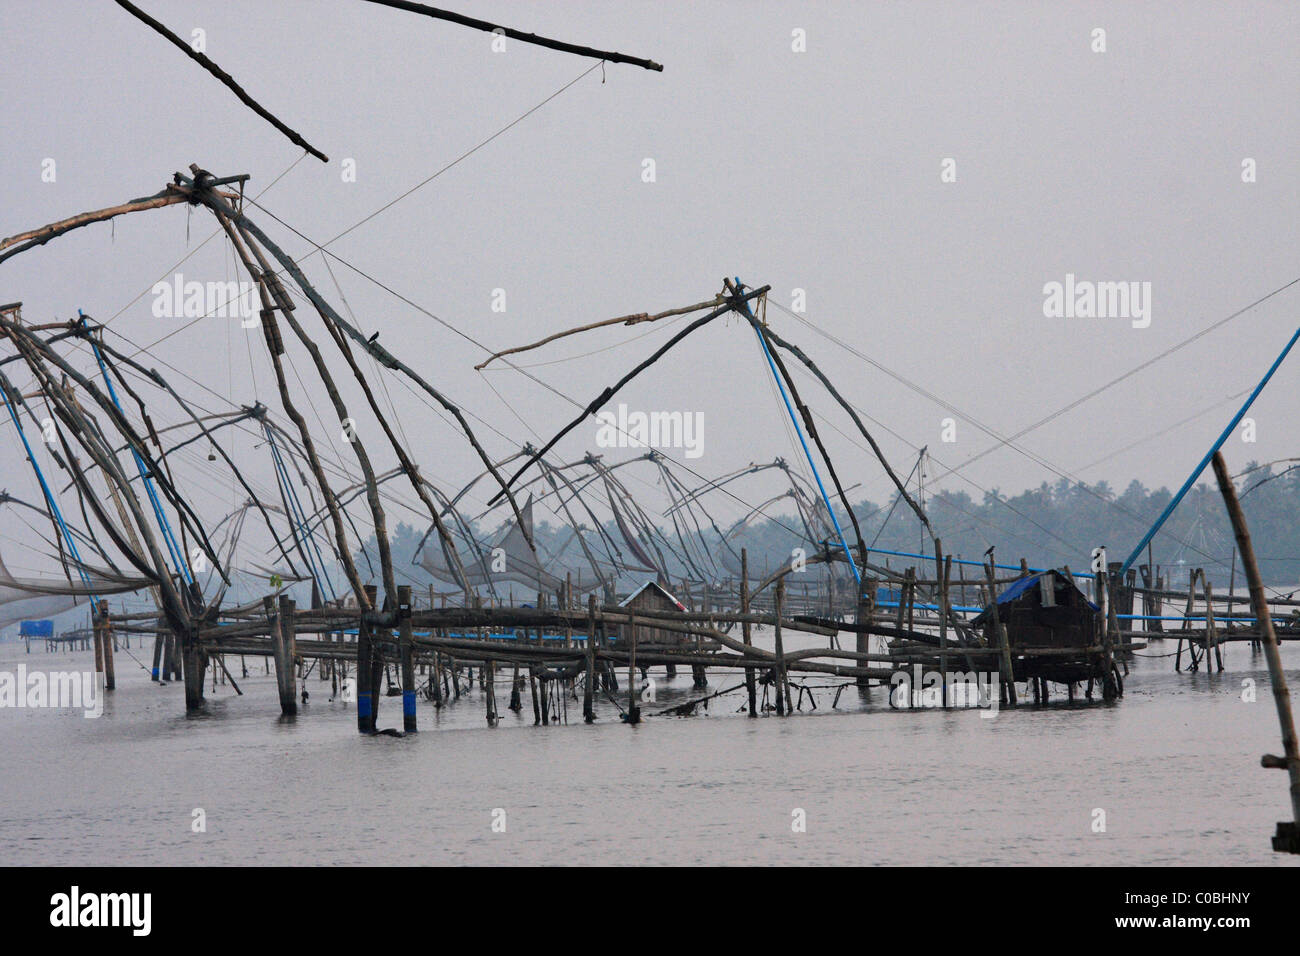 chinese fish nets in kerala,india - Stock Image